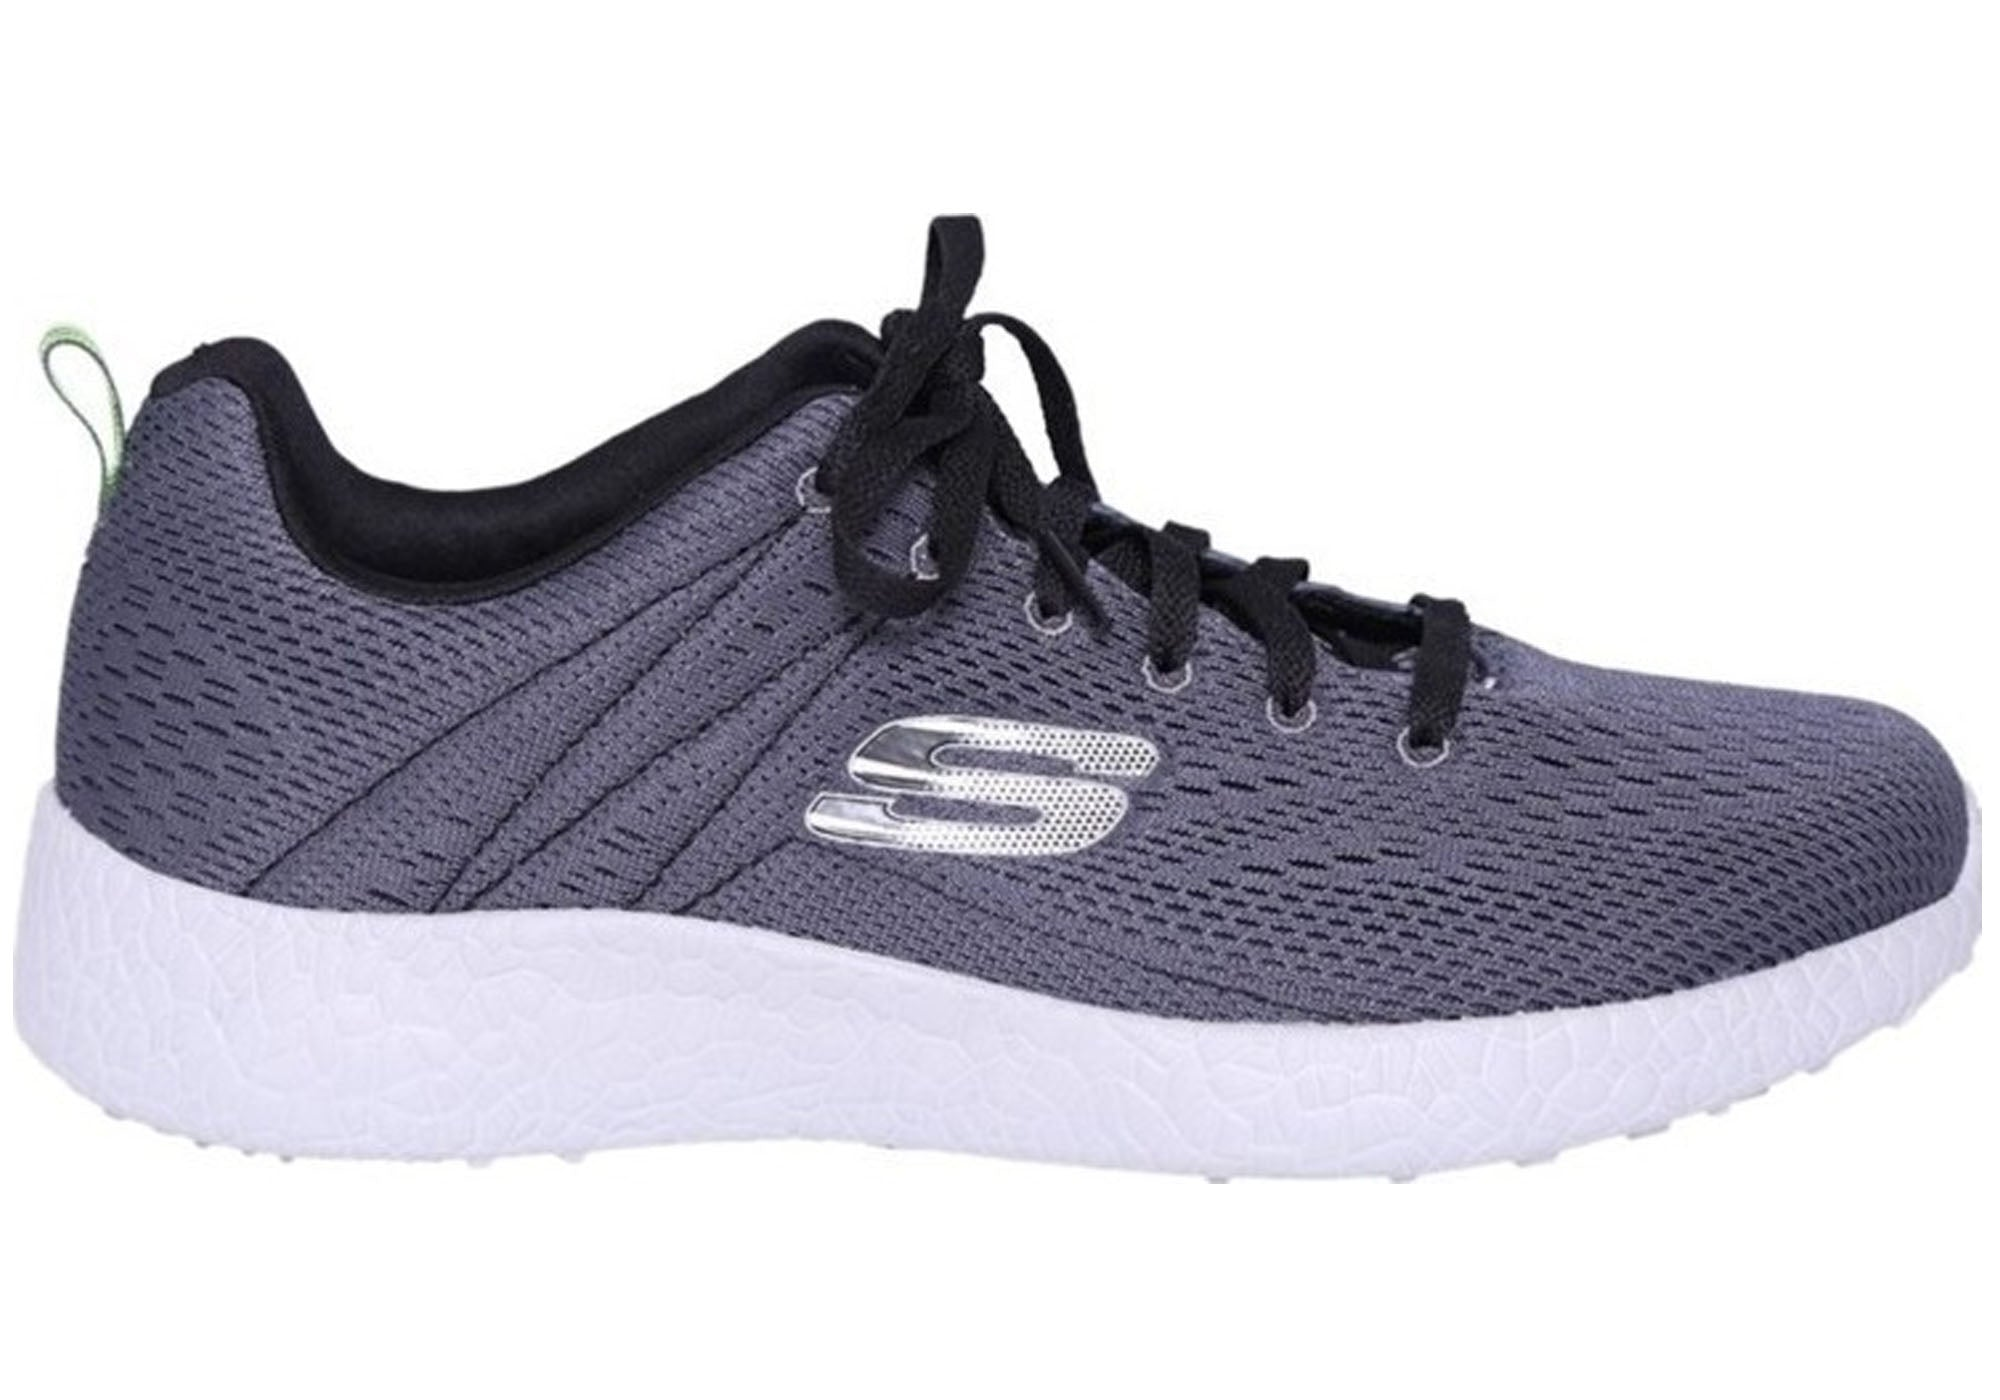 New Skechers hommes Energy Burst Burst Energy Second Wind Running/Sport Chaussures 86c790